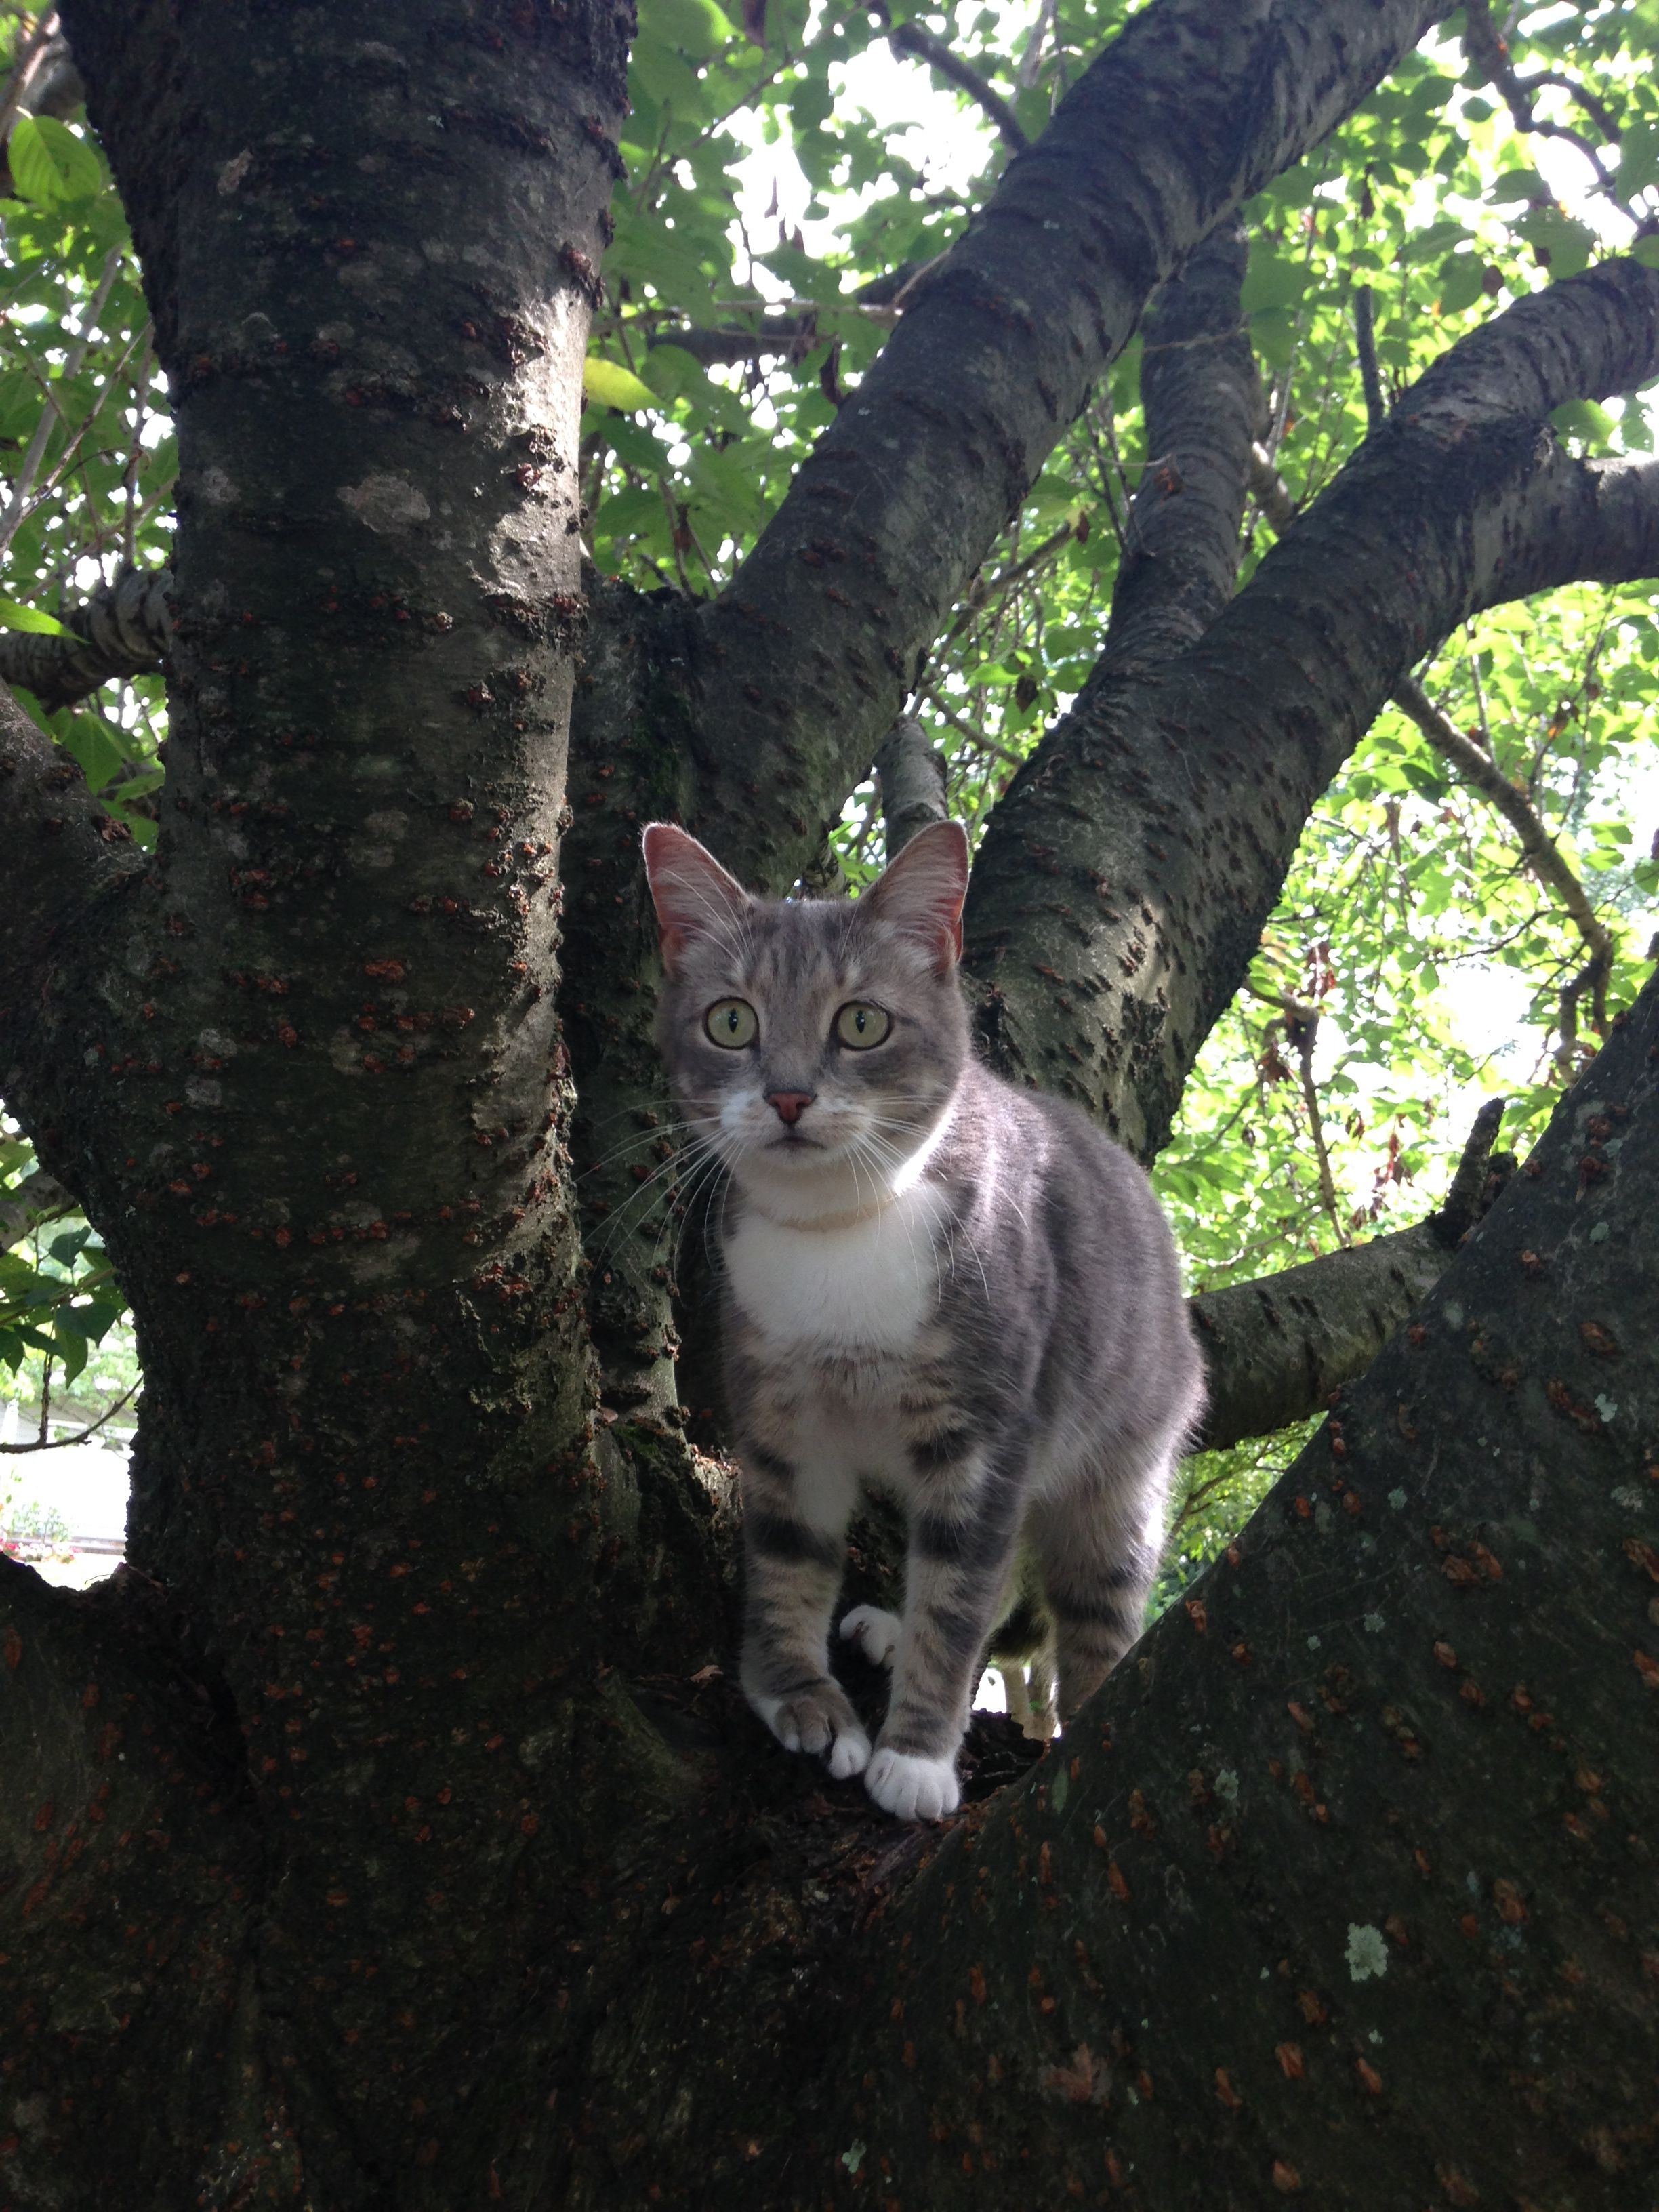 Mitzi is a small adult female. She is grey and white, has